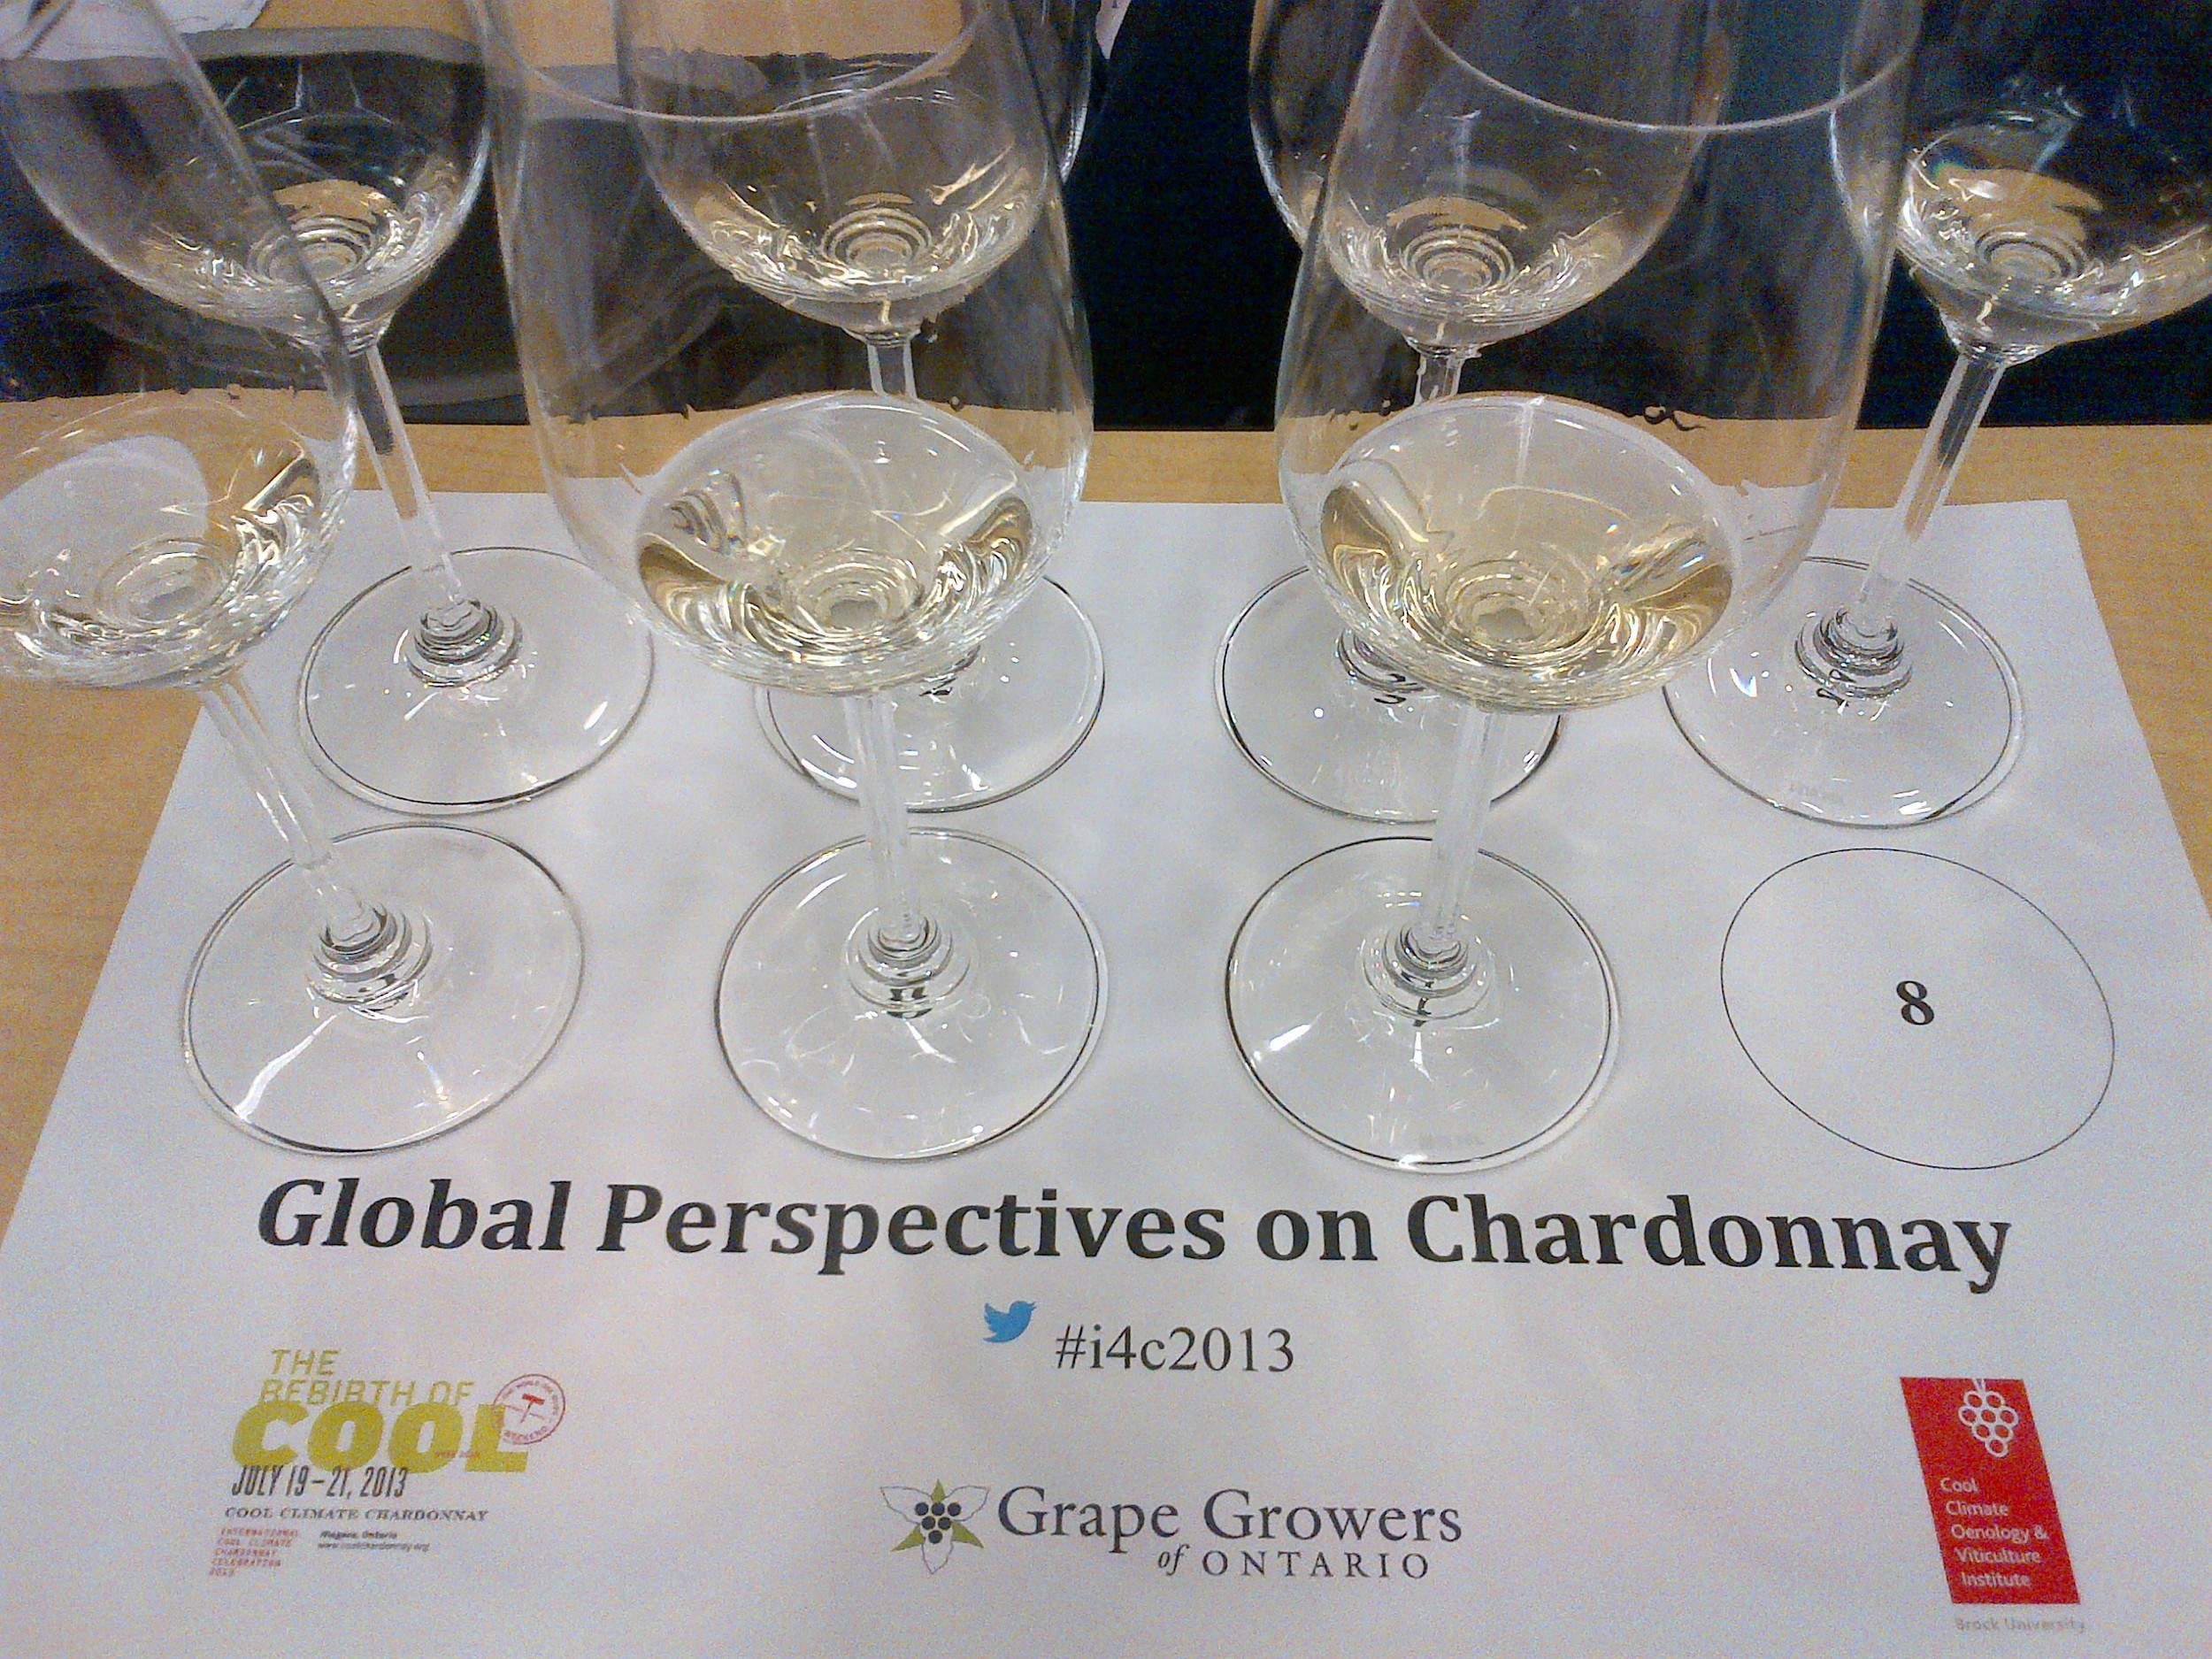 Blind Chardonnay lineup at i4c opening talk moderated by Steven Spurrier.